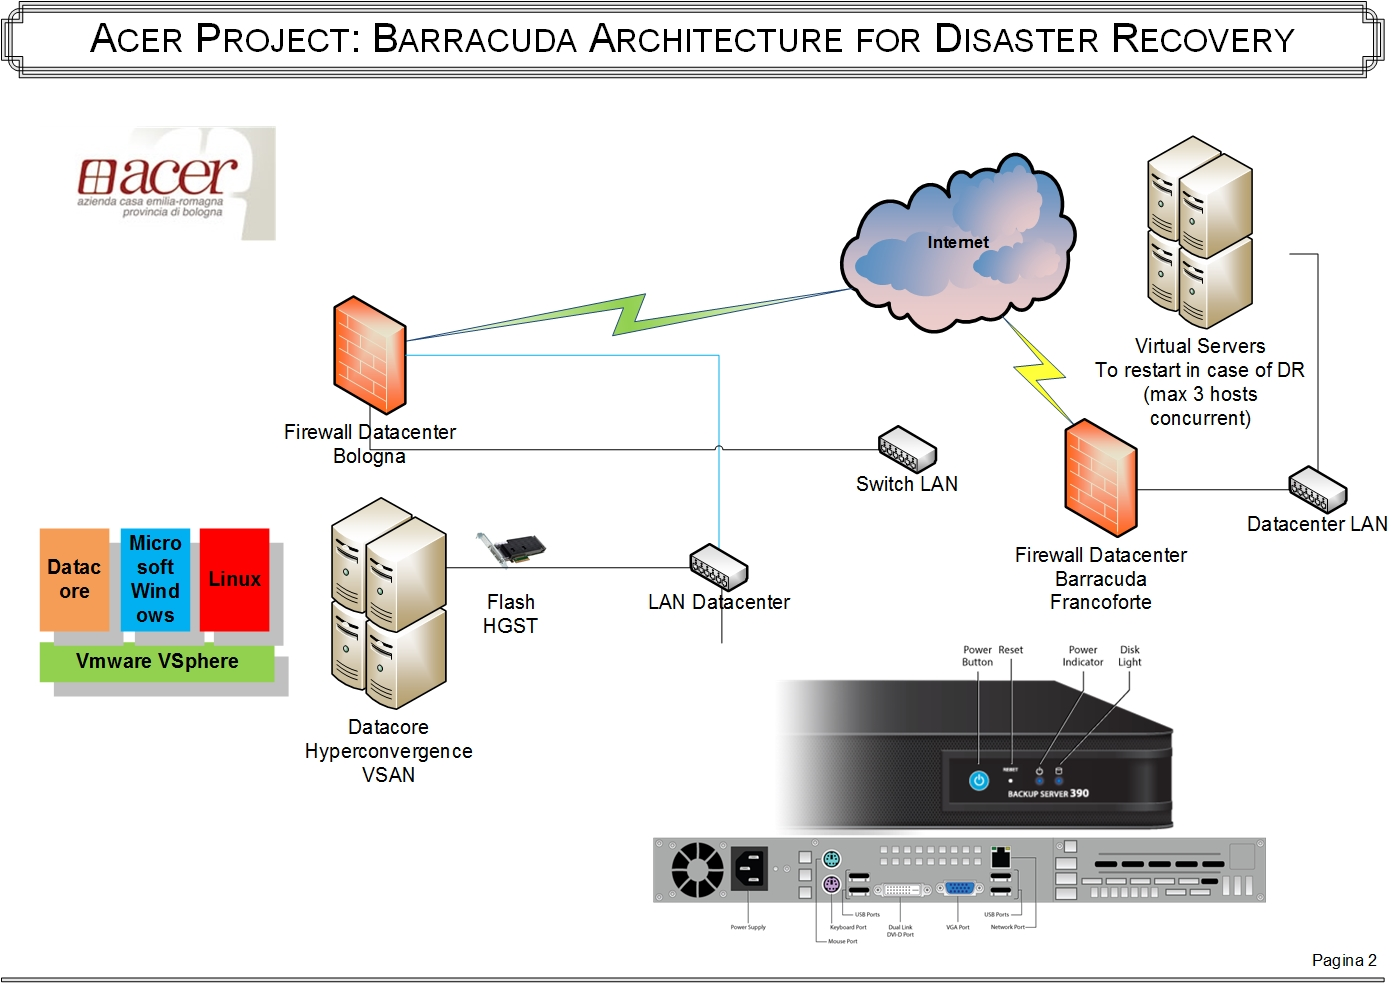 Servizi di Business Continuity - Barracuda